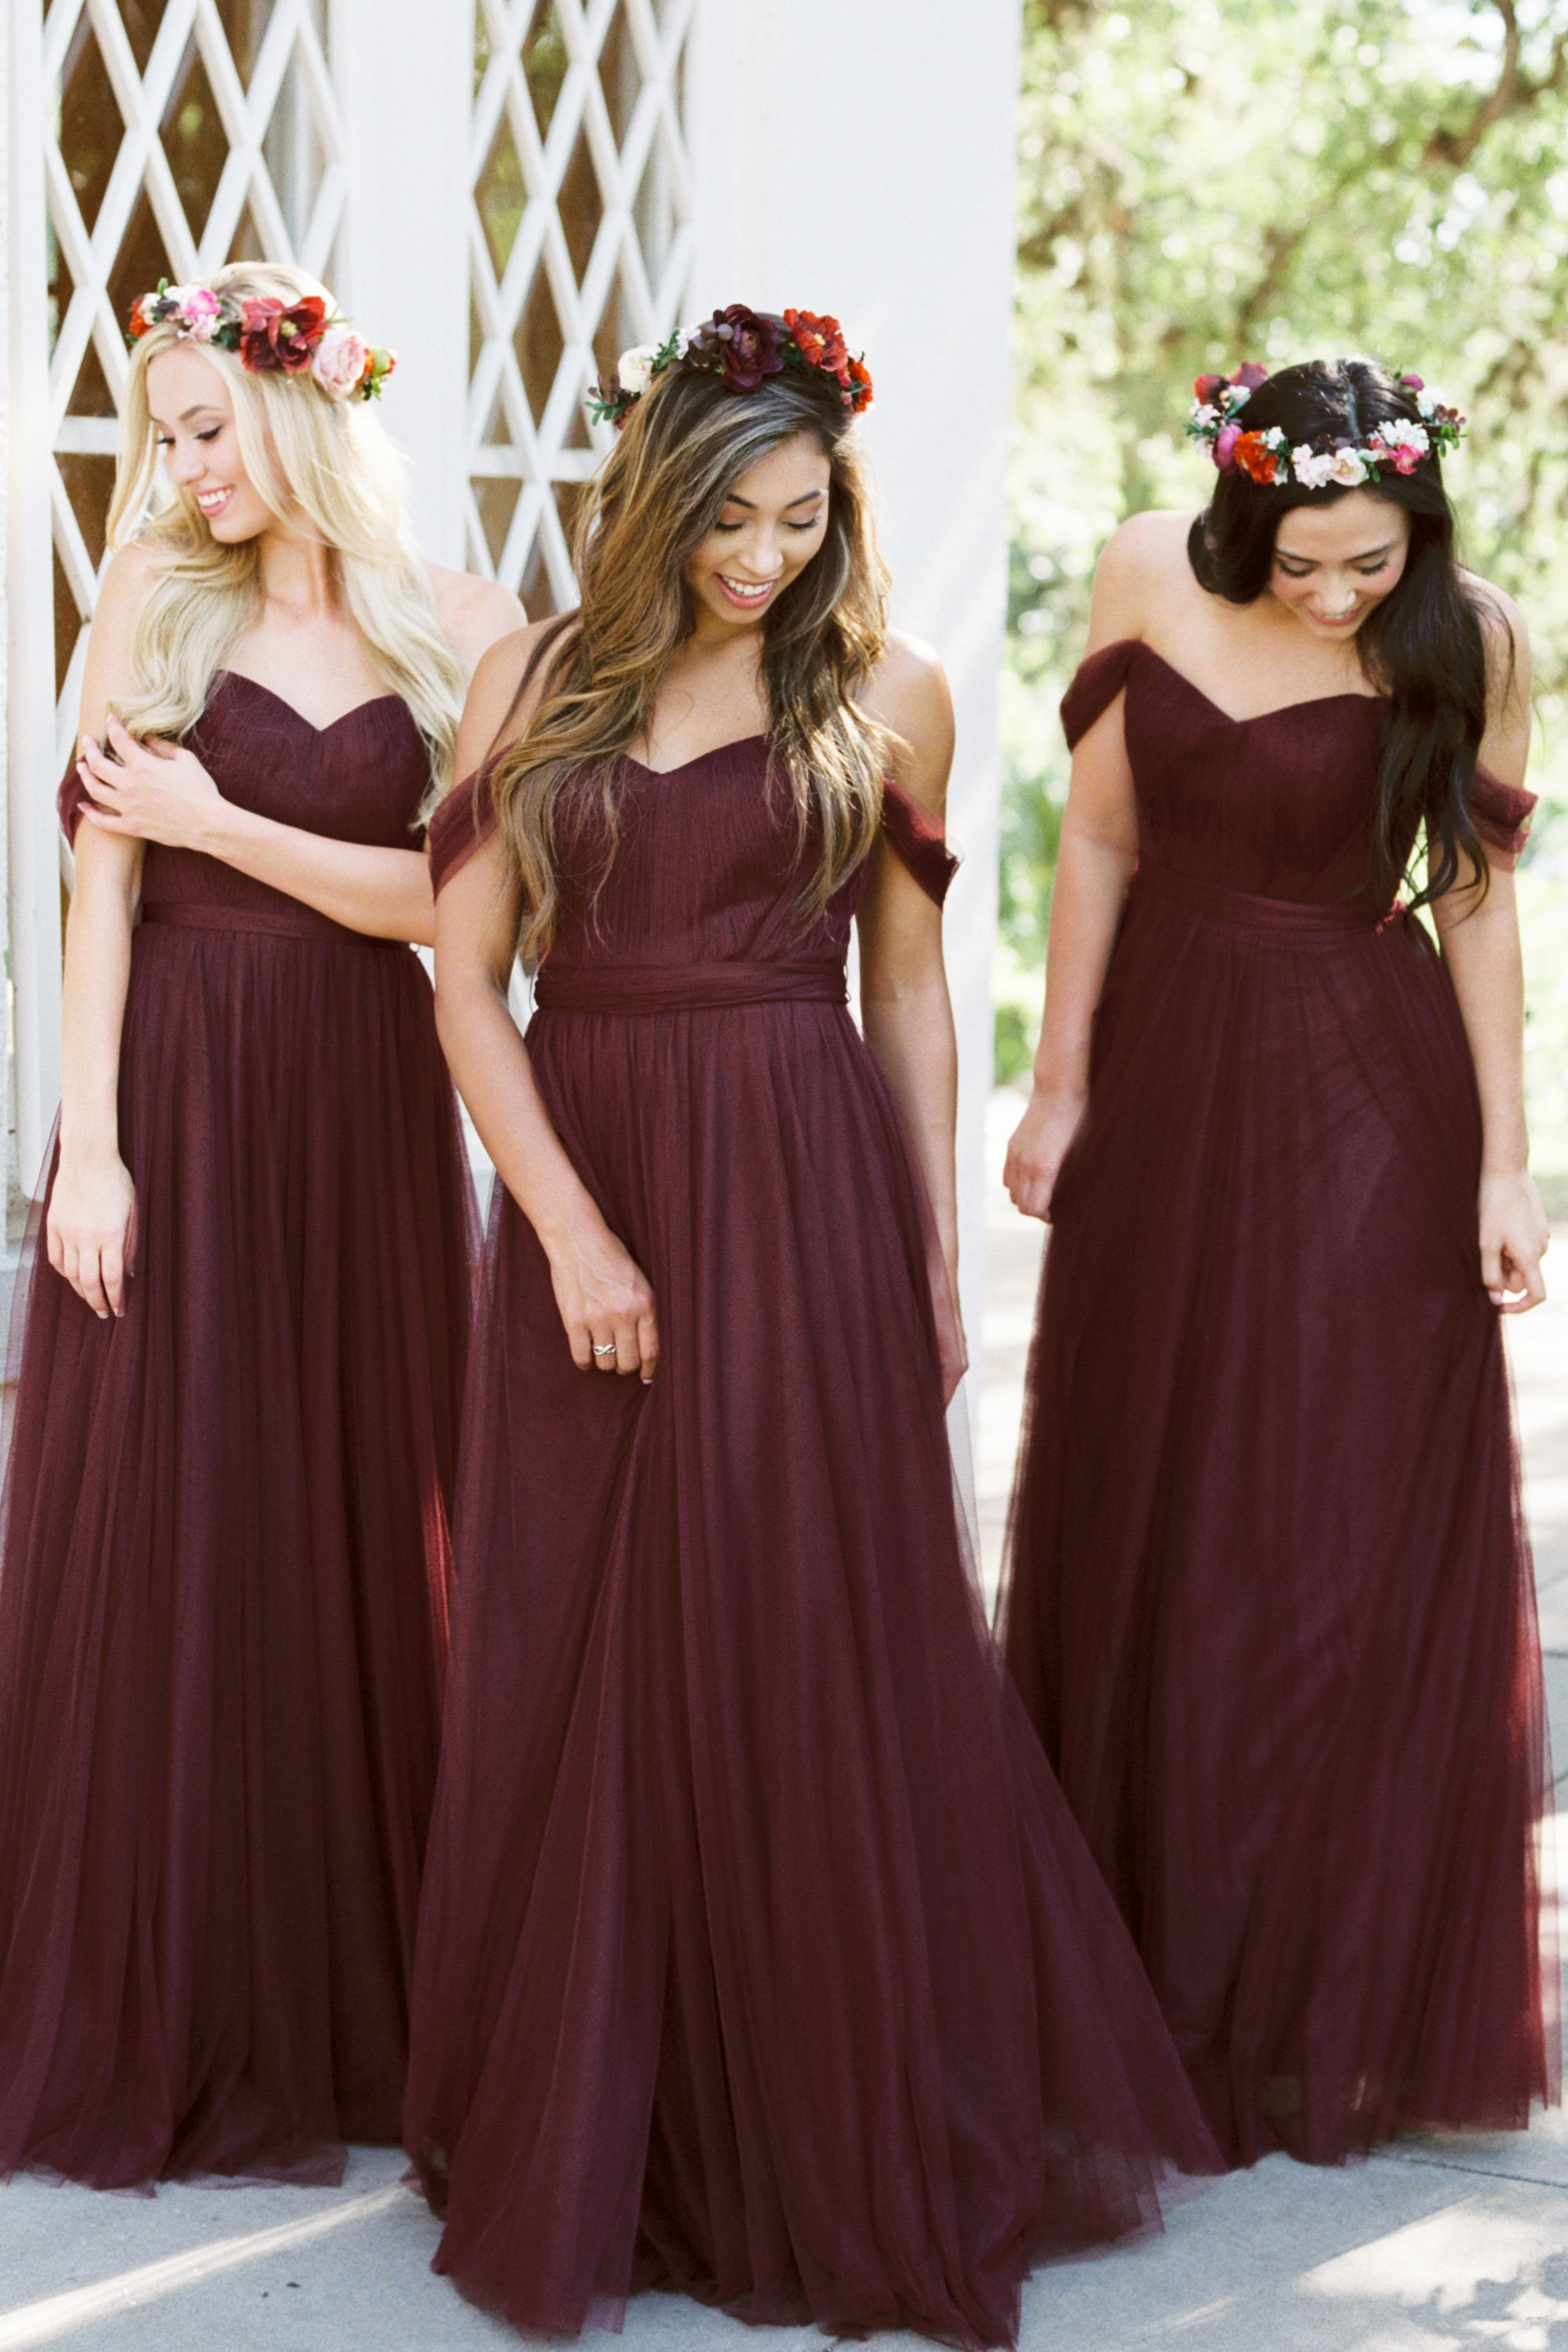 Bridesmaid Dresses And Separates From The Leading Ecommerce Bridesmaid Dress Company Try Any S Bridesmaid Dresses Separates Bridesmaid Style Dresses